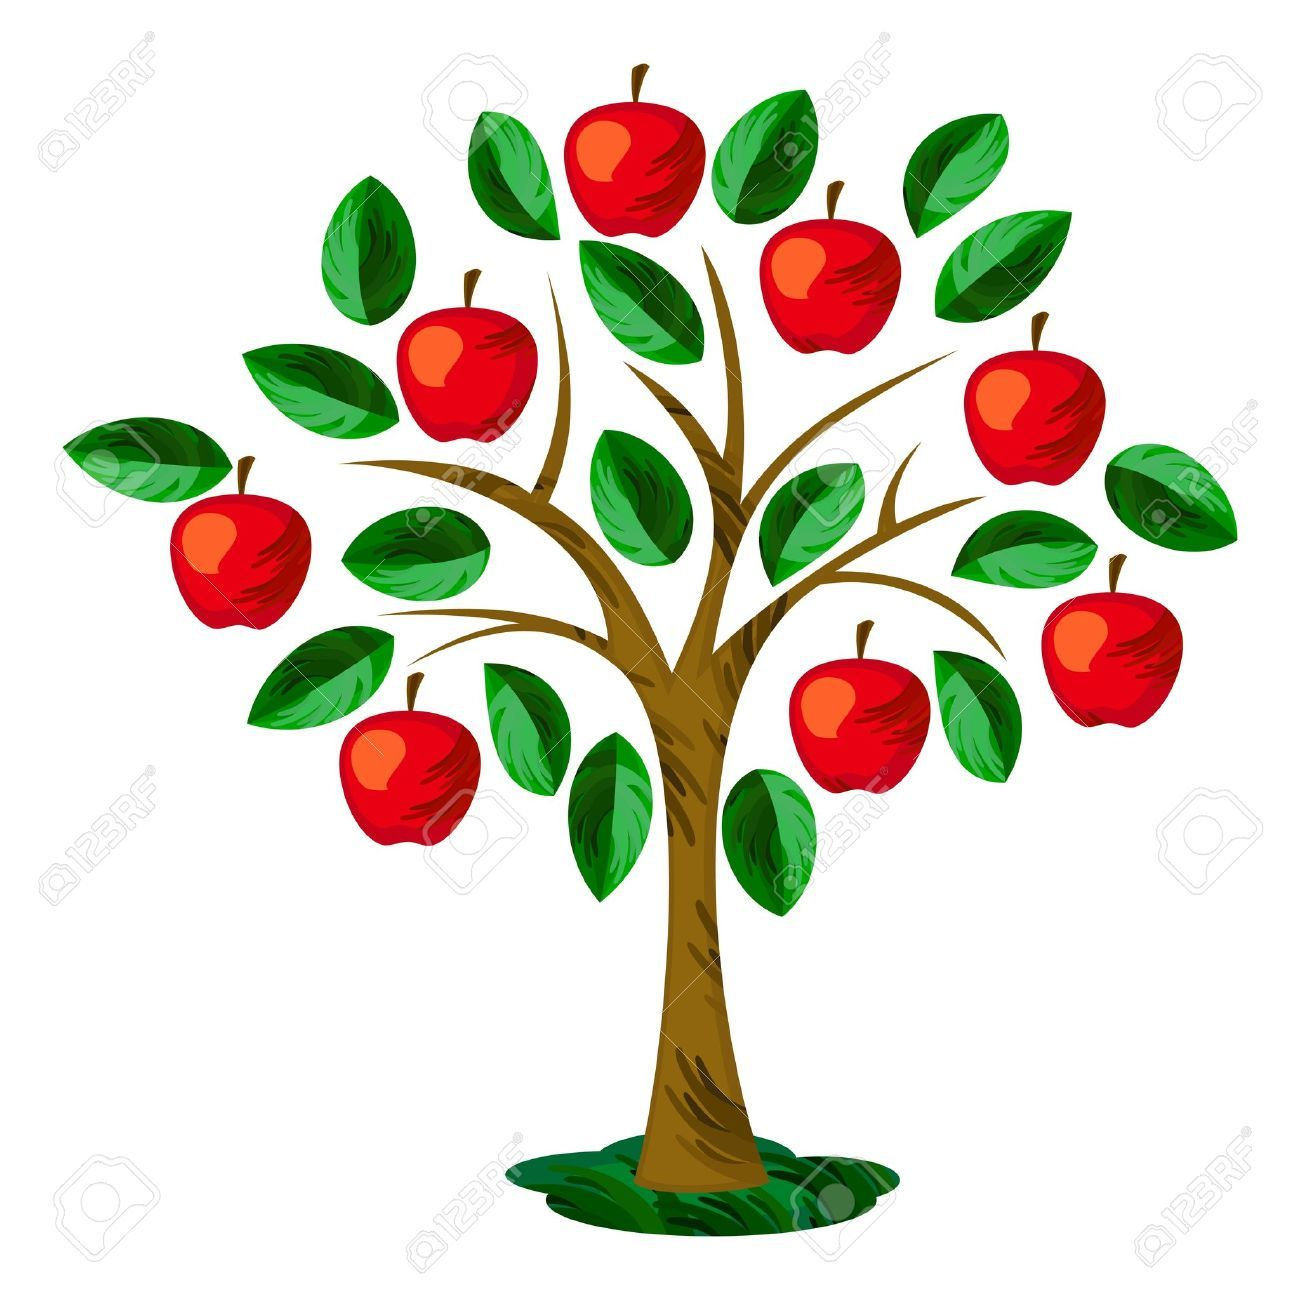 Fruit tree icon Stock image and royalty.